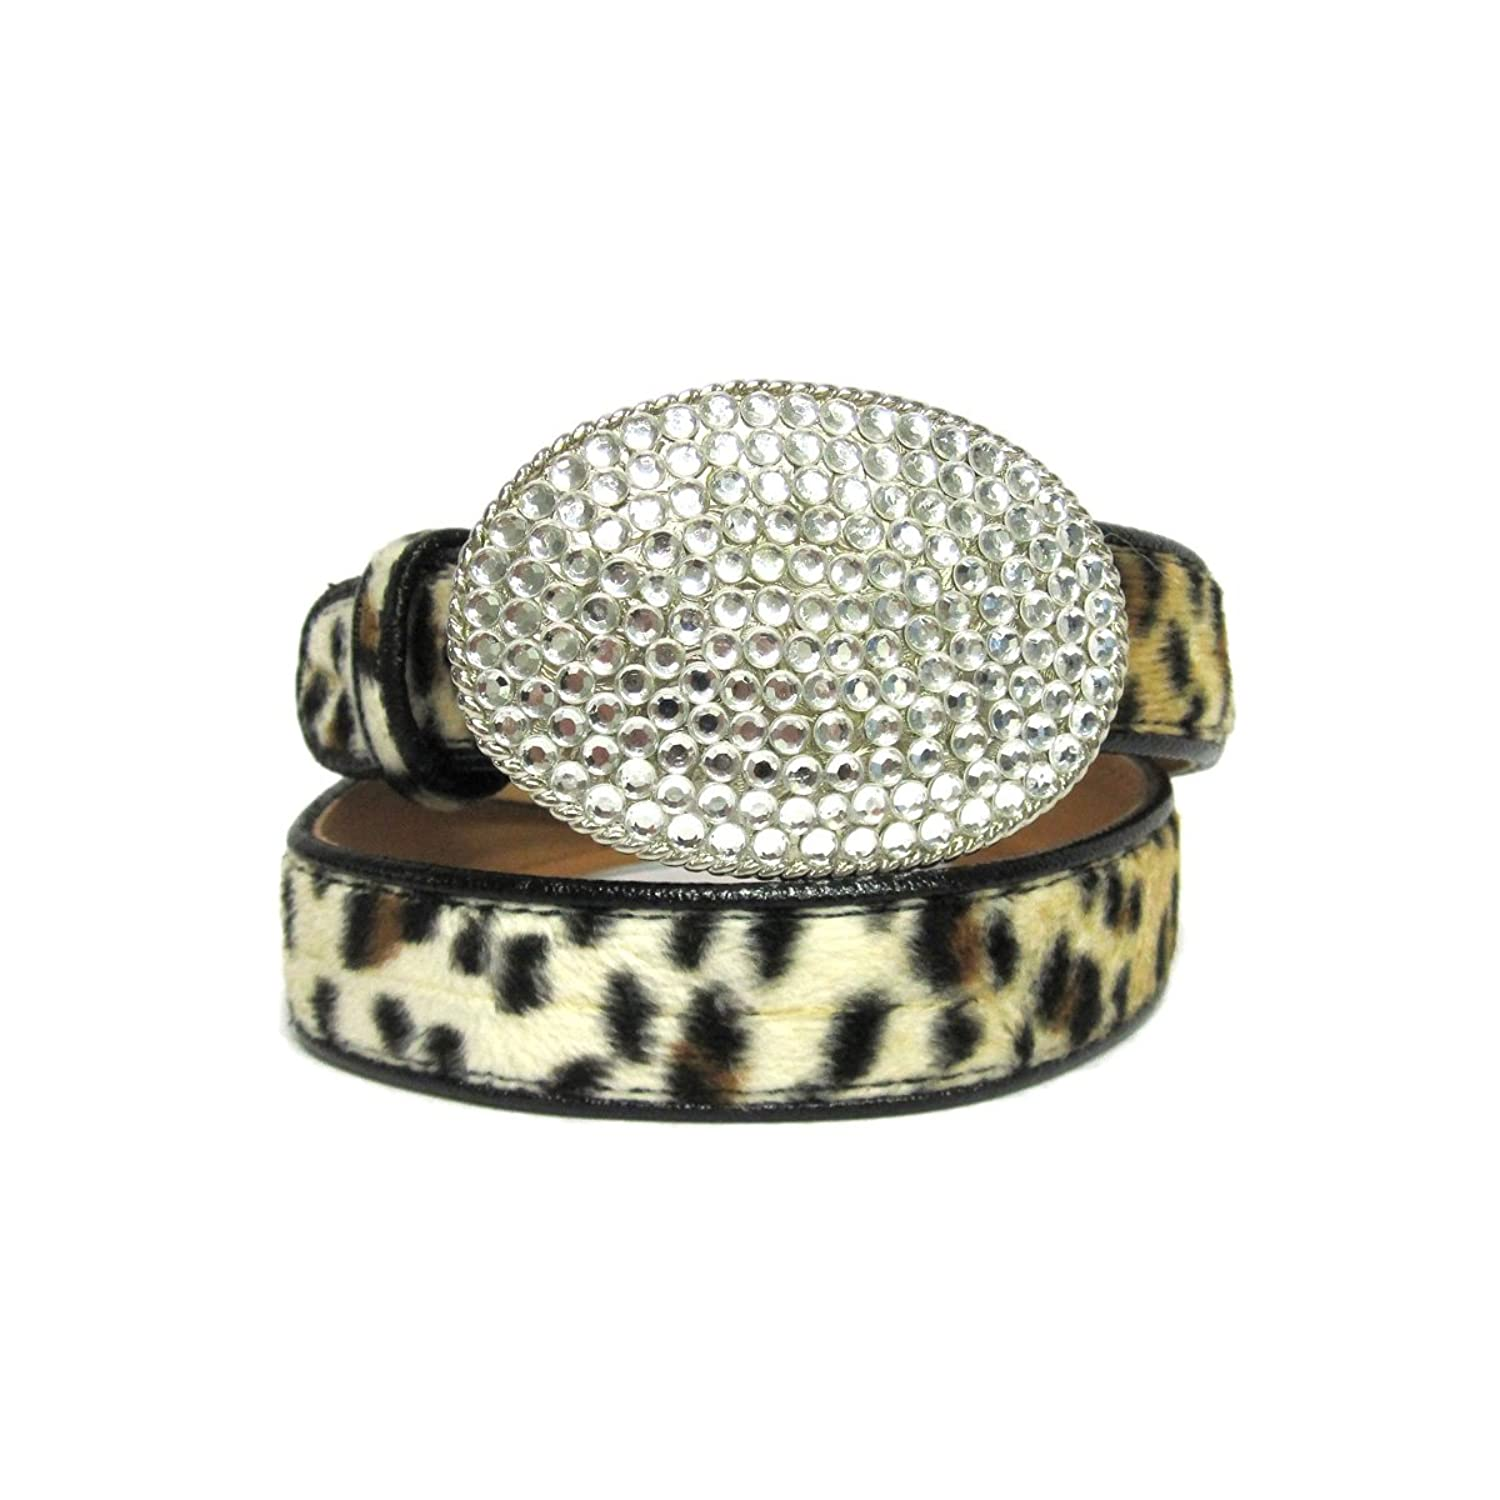 "1 1/8"" Women's Oval Silver Buckle with Rhinestones on Quality Cheetah Faux Fu..."